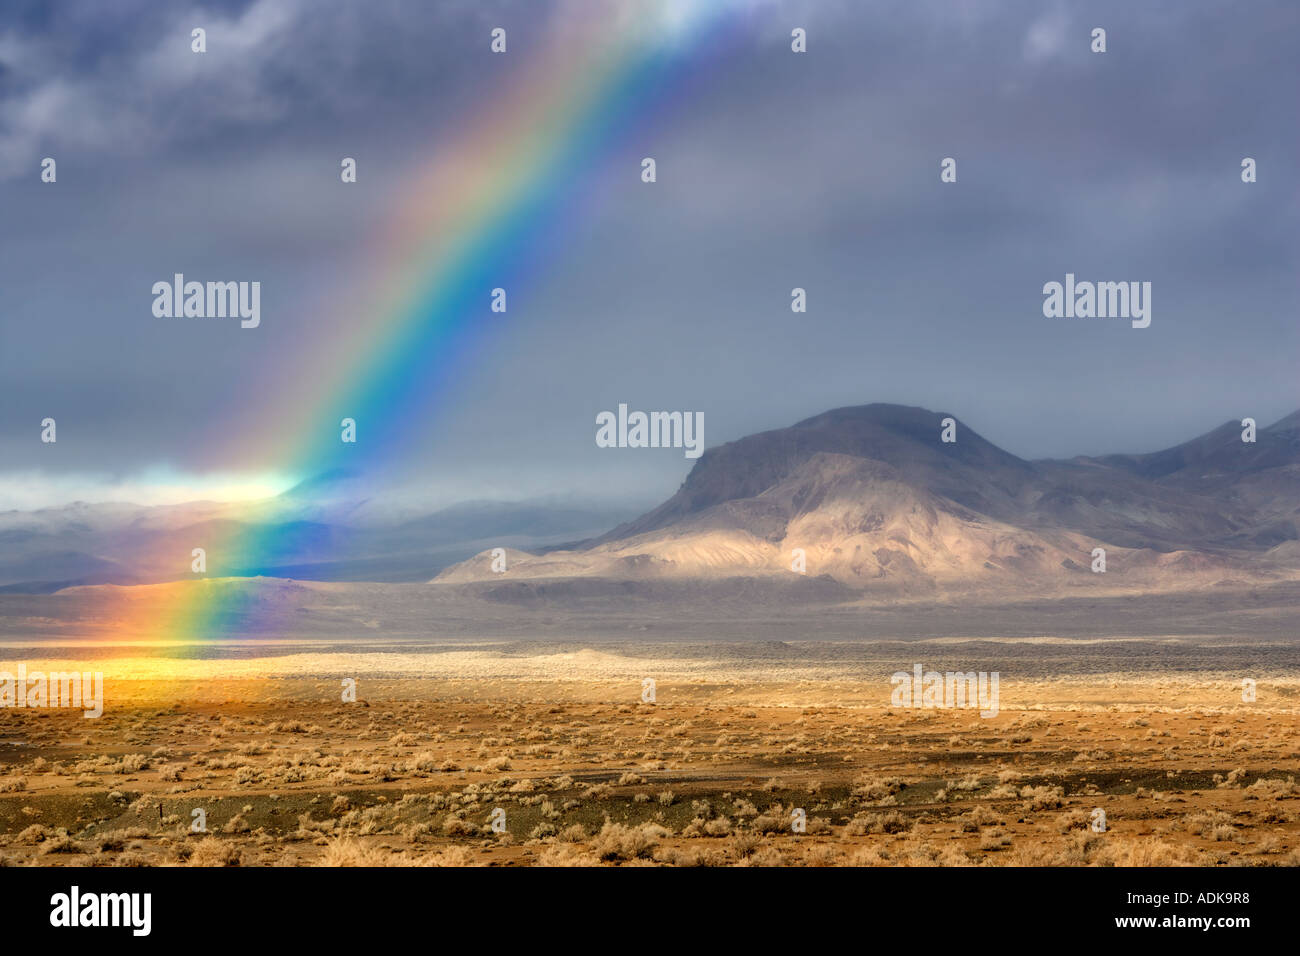 Rainbow with mountains Black Rock Desert National Conservation Area Nevada - Stock Image